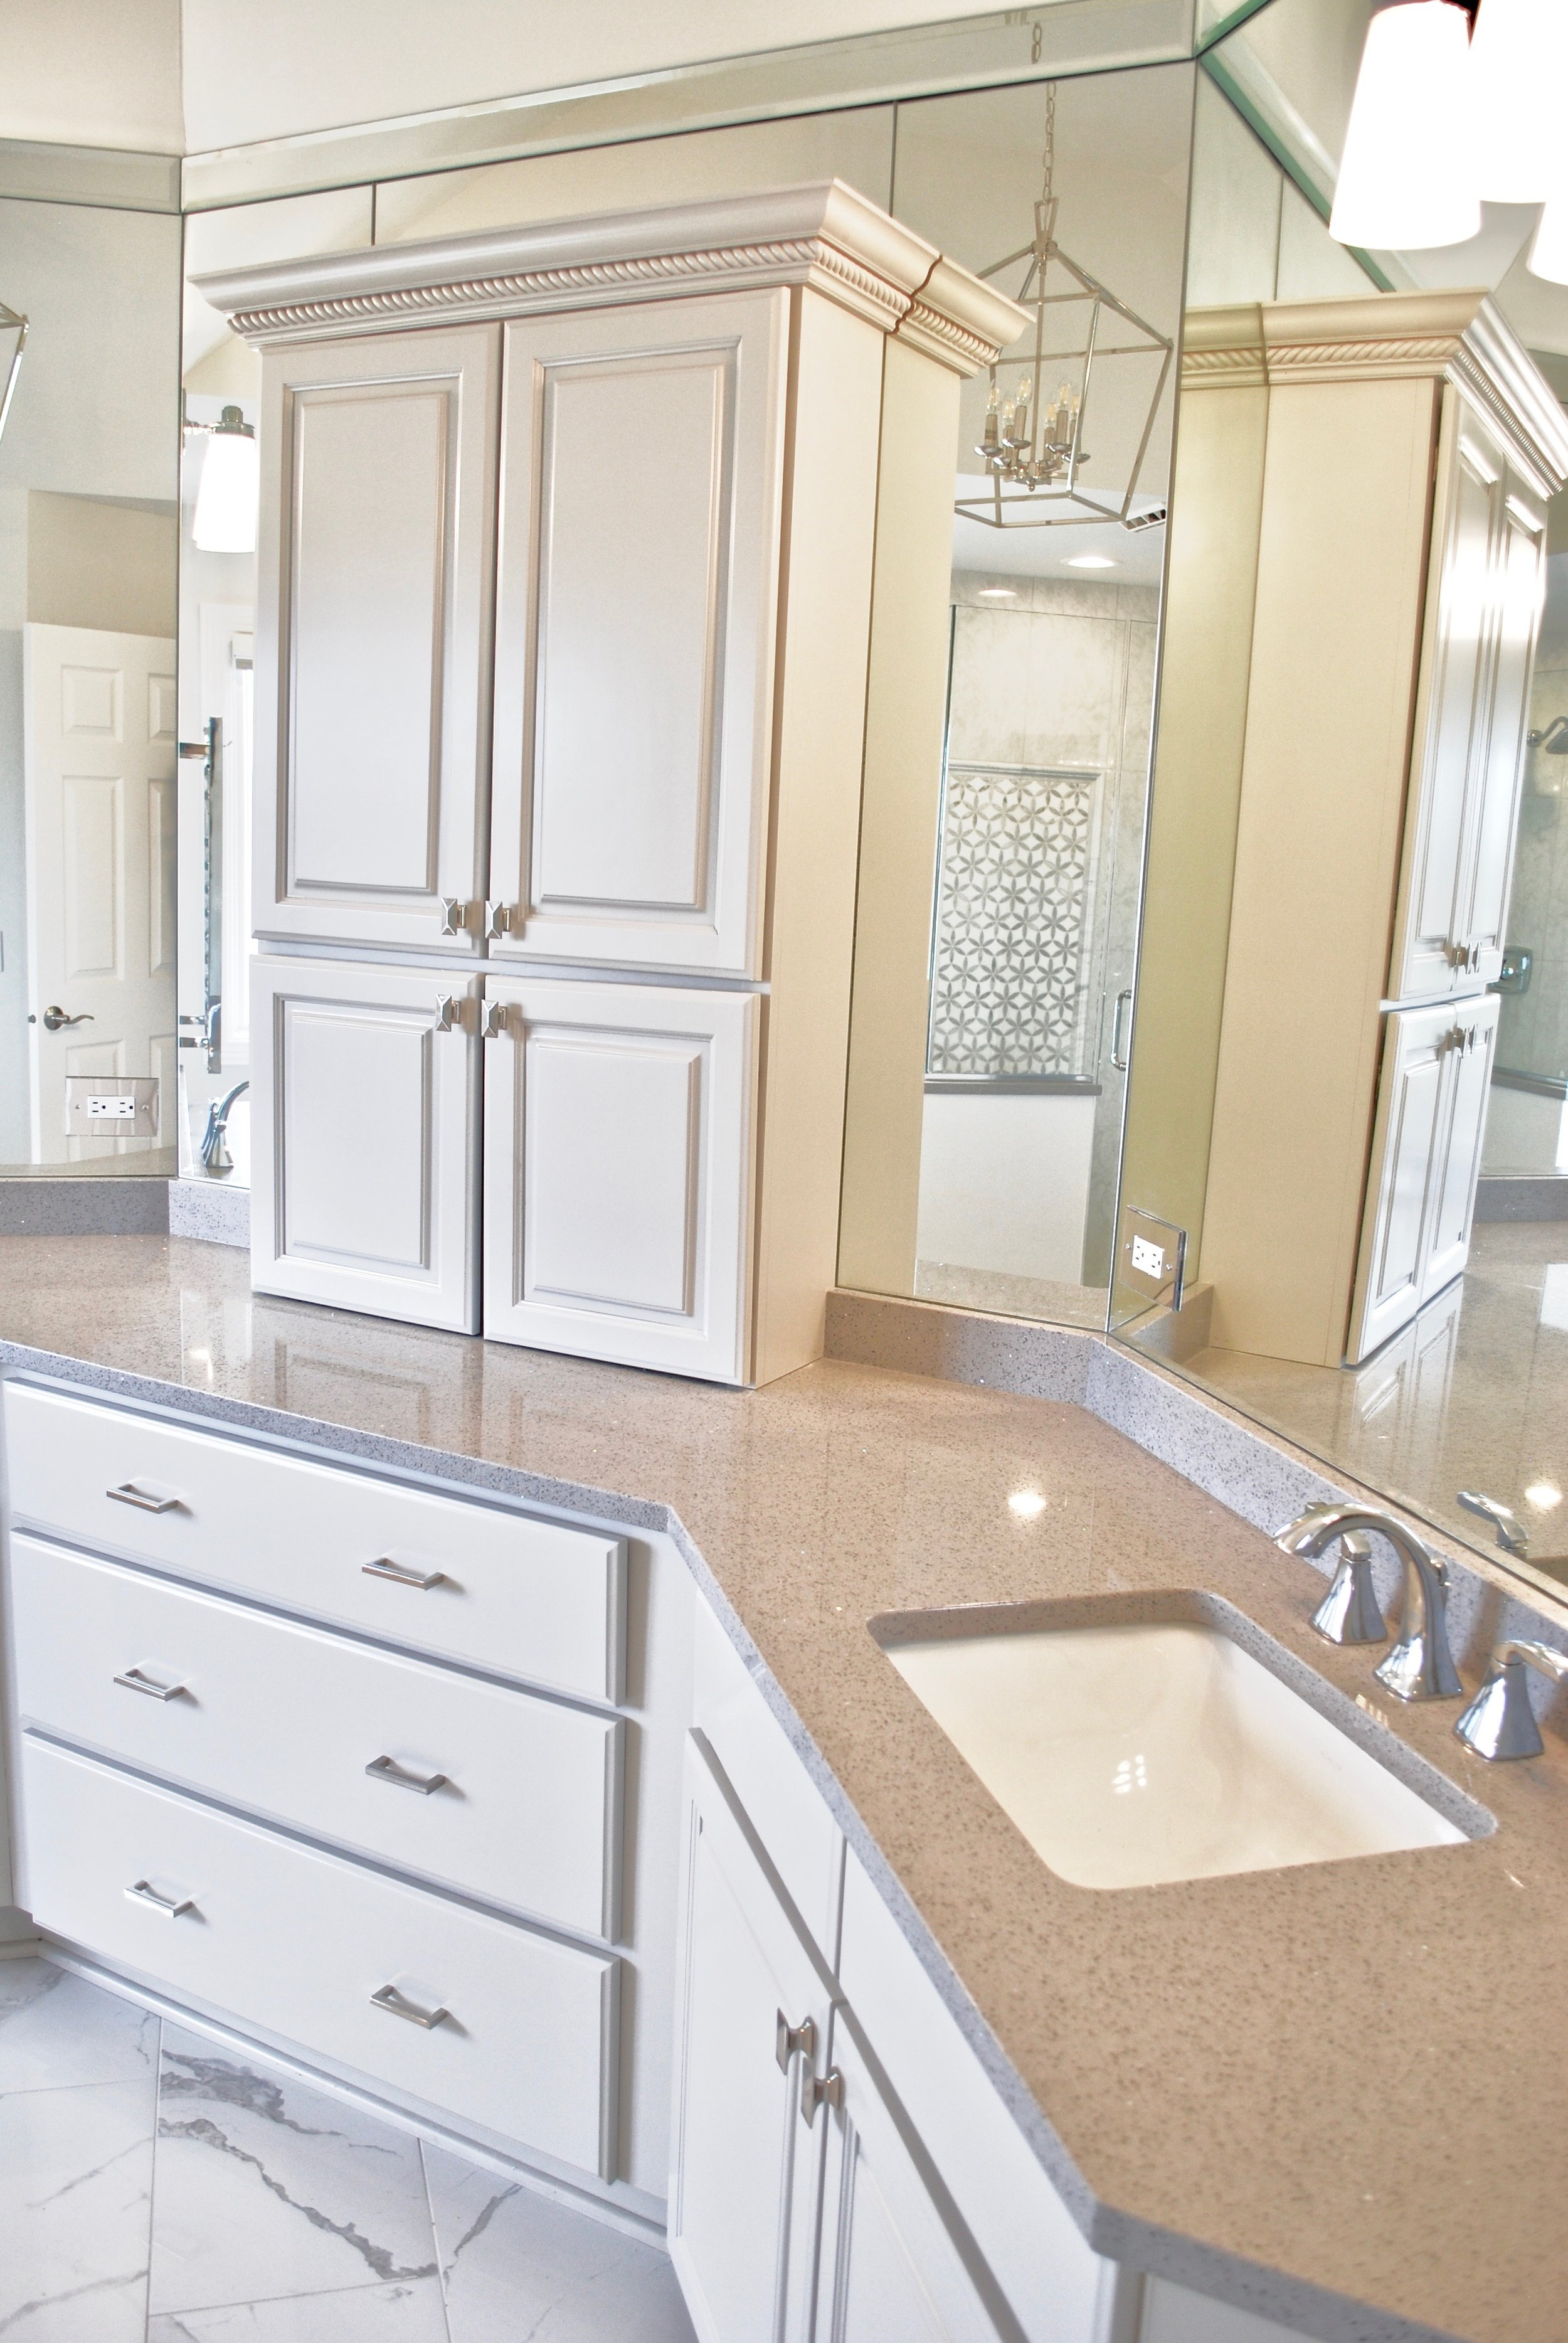 Cabinet Painting & Refinishing in Naperville IL. Looking to Paint Existing Cabinets or Remodel Your Bathroom to Replace Old Shower & Oversized Tub Deck. Located in Geneva IL.